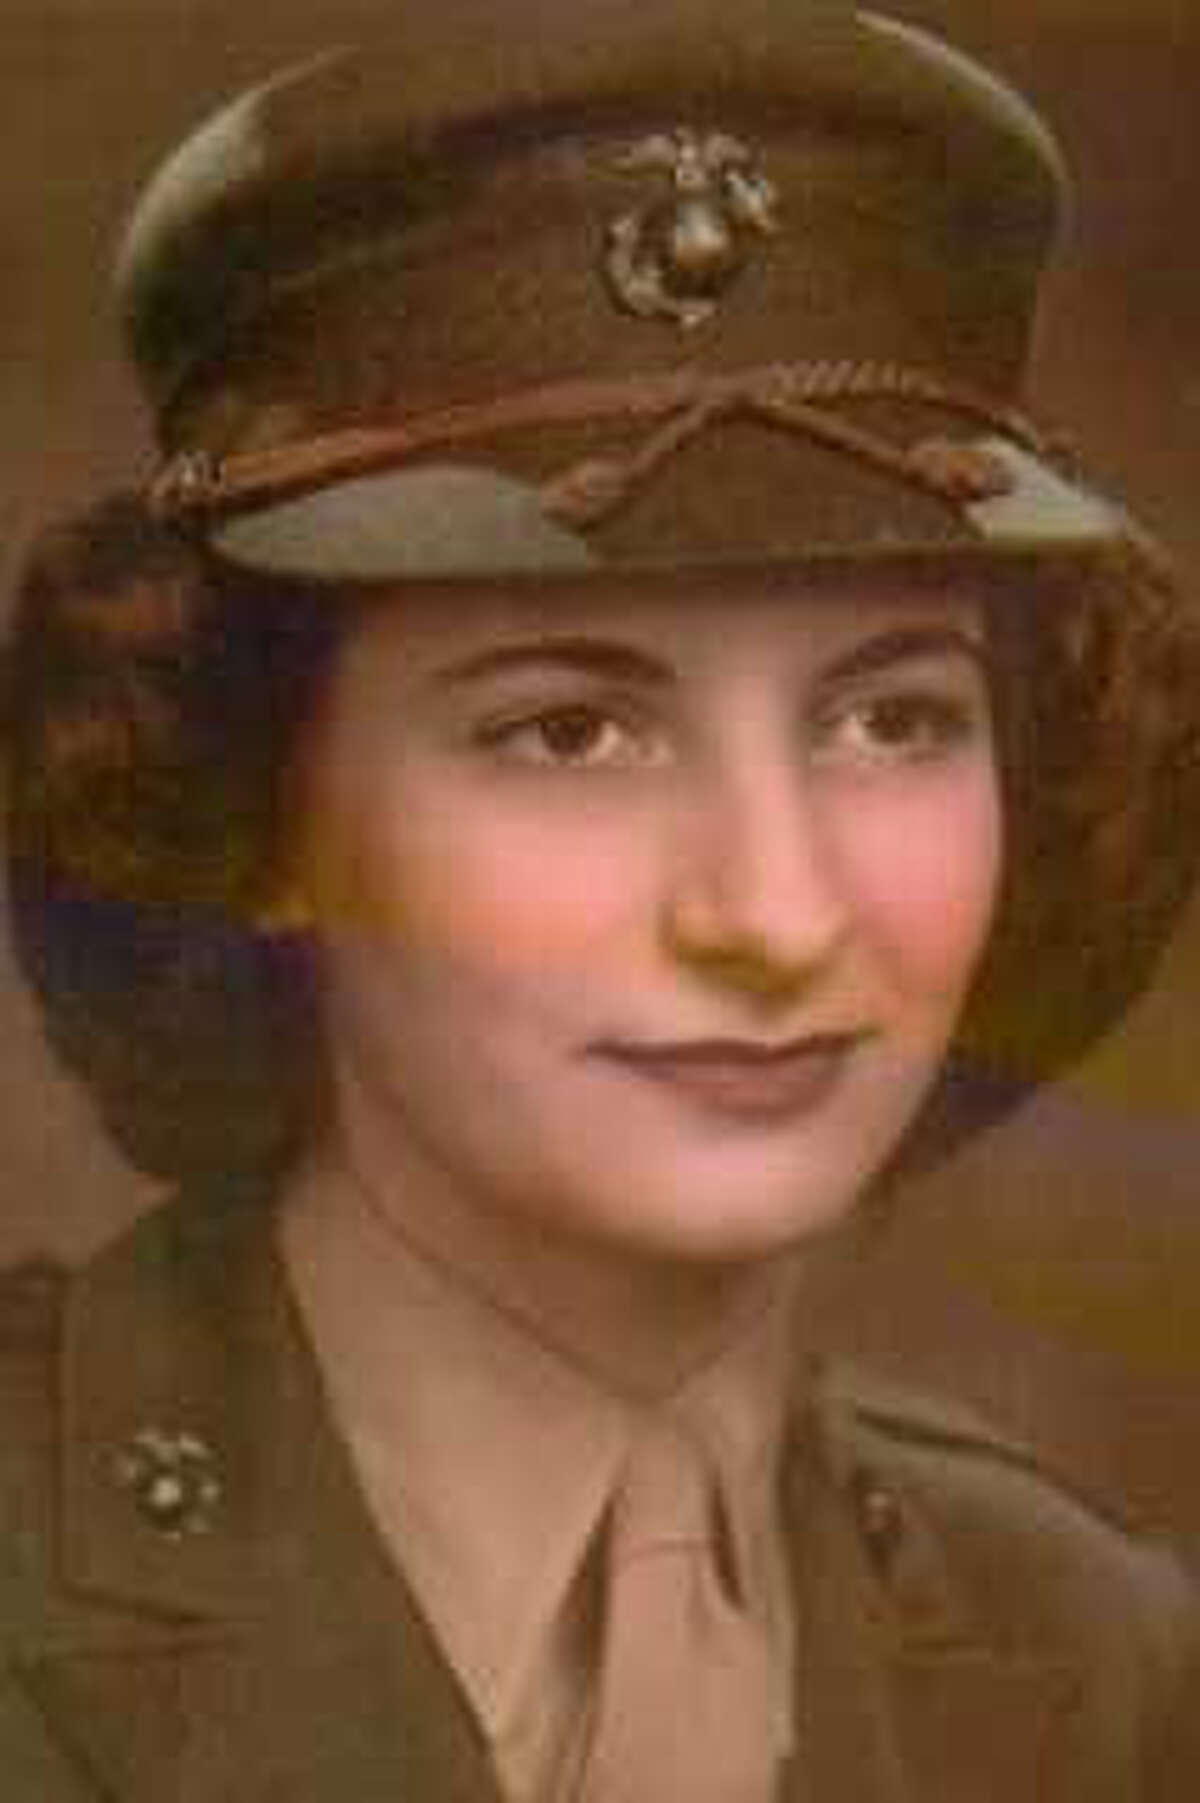 Annamae Marcus Bejger joined the Marines in 1943 and served as a technical sergeant.